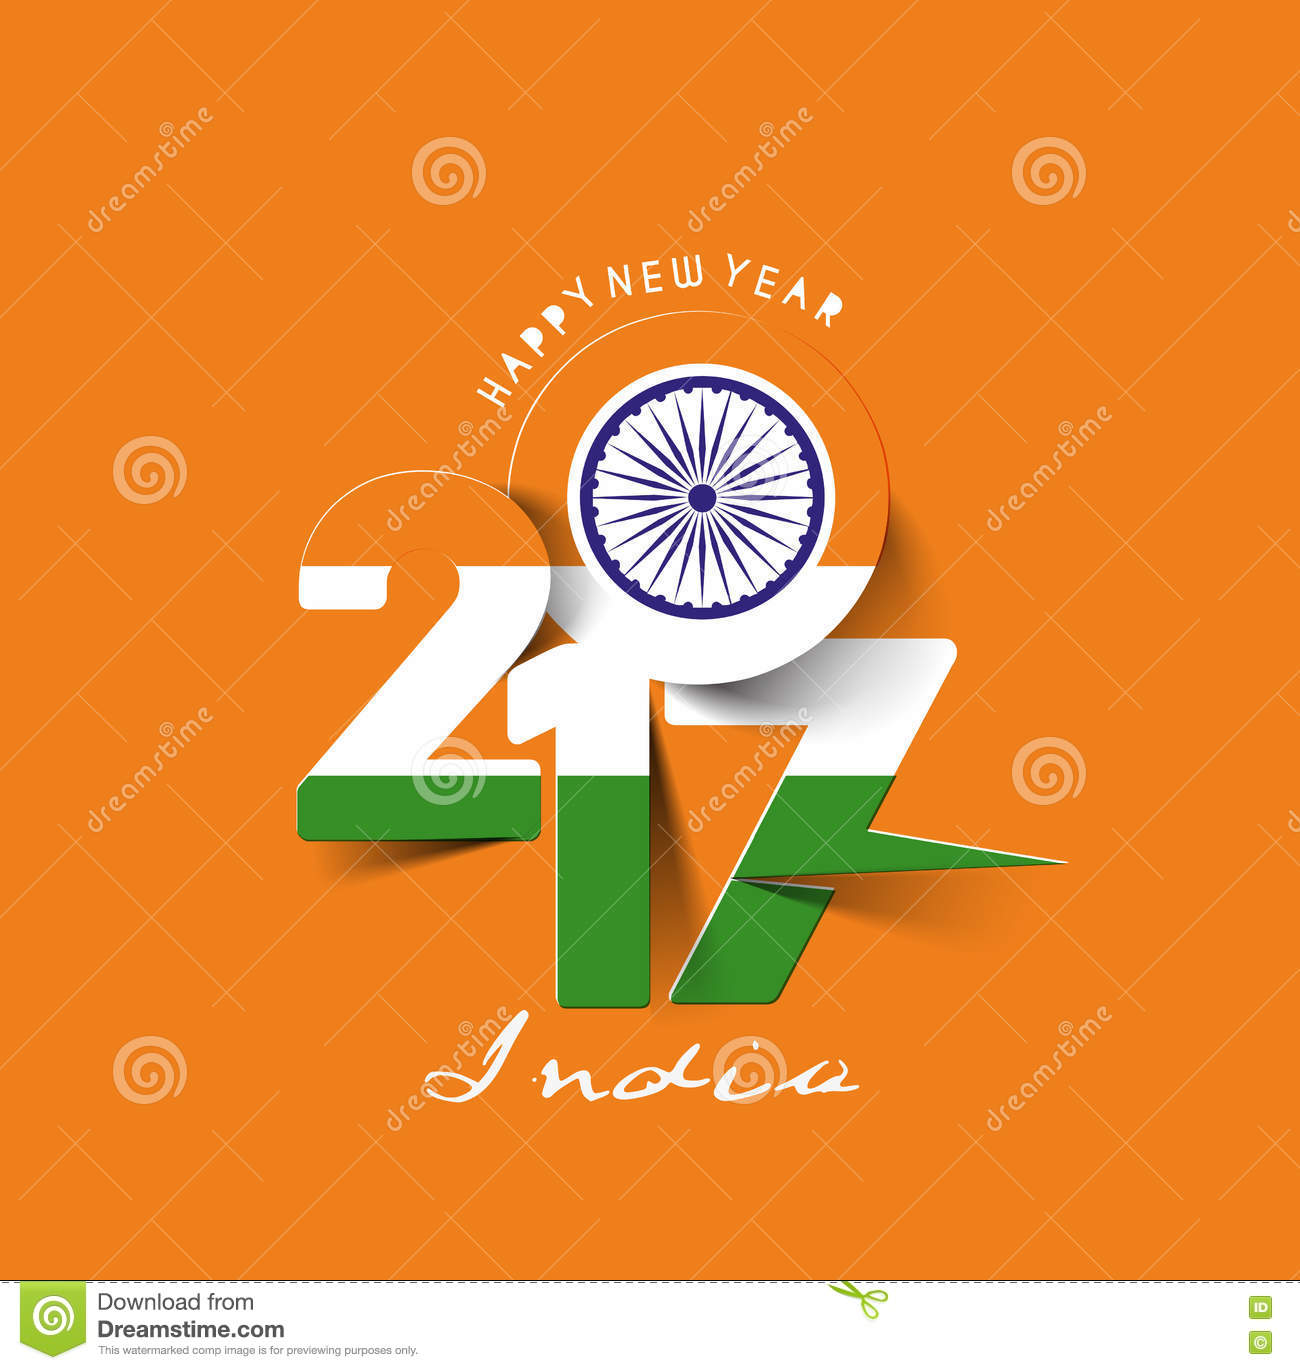 happy new year 2017 with india flag pattern text